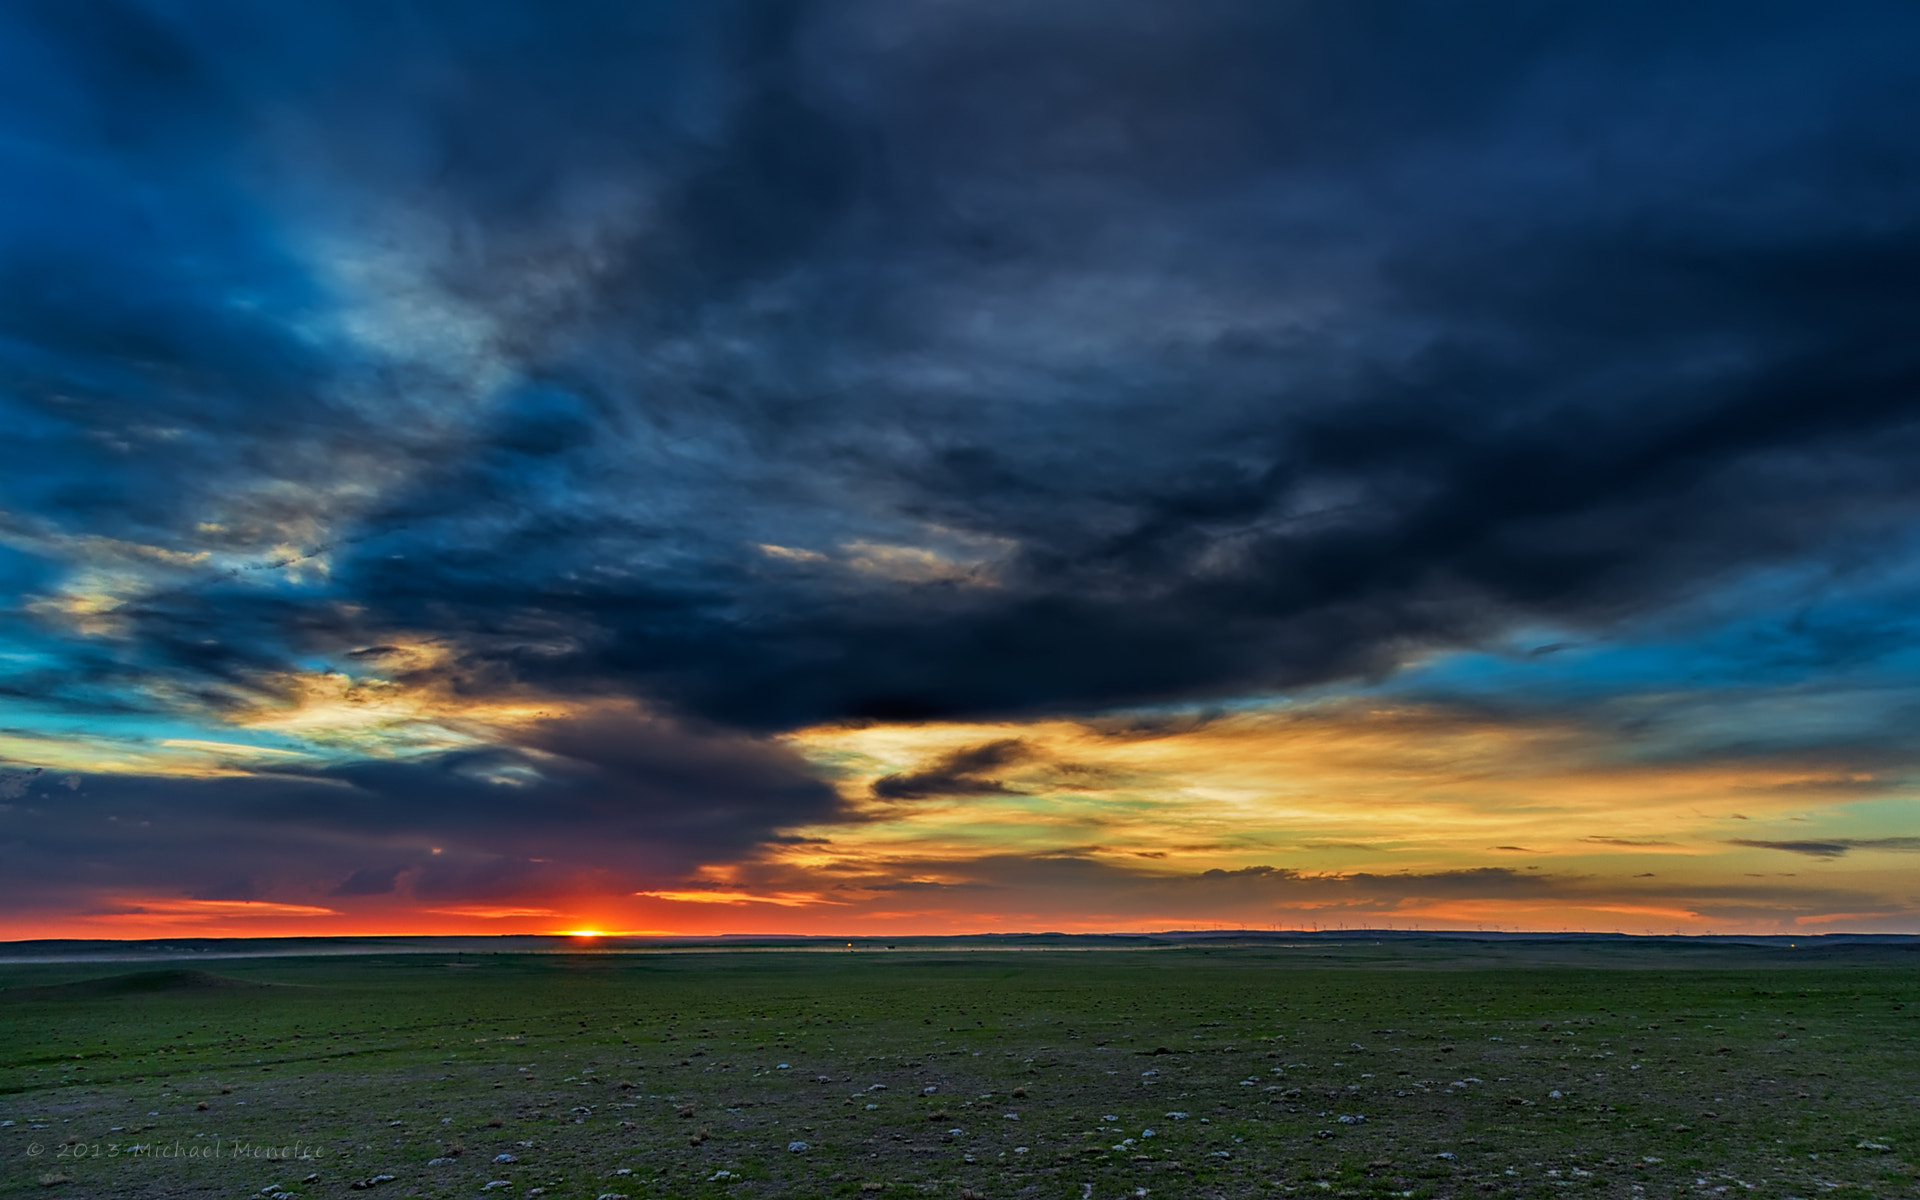 Photograph Spring Sunset Sublime on the Pawnee by Michael Menefee on 500px